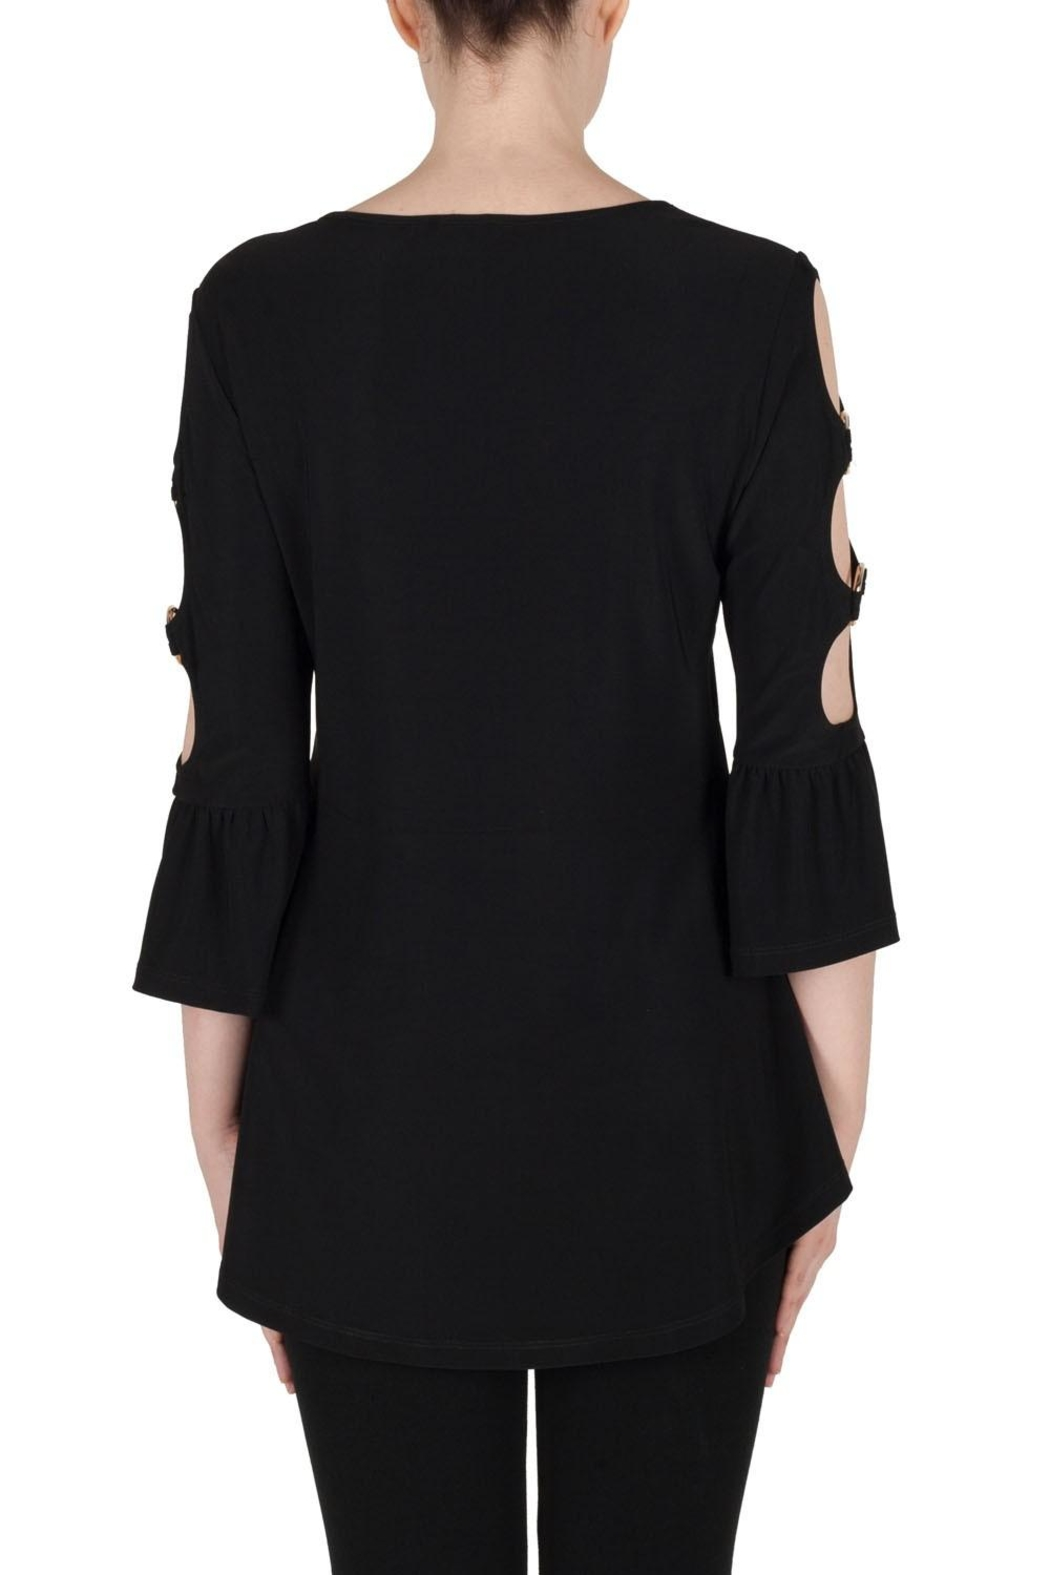 Joseph Ribkoff Cut Out Sleeve Top - Side Cropped Image